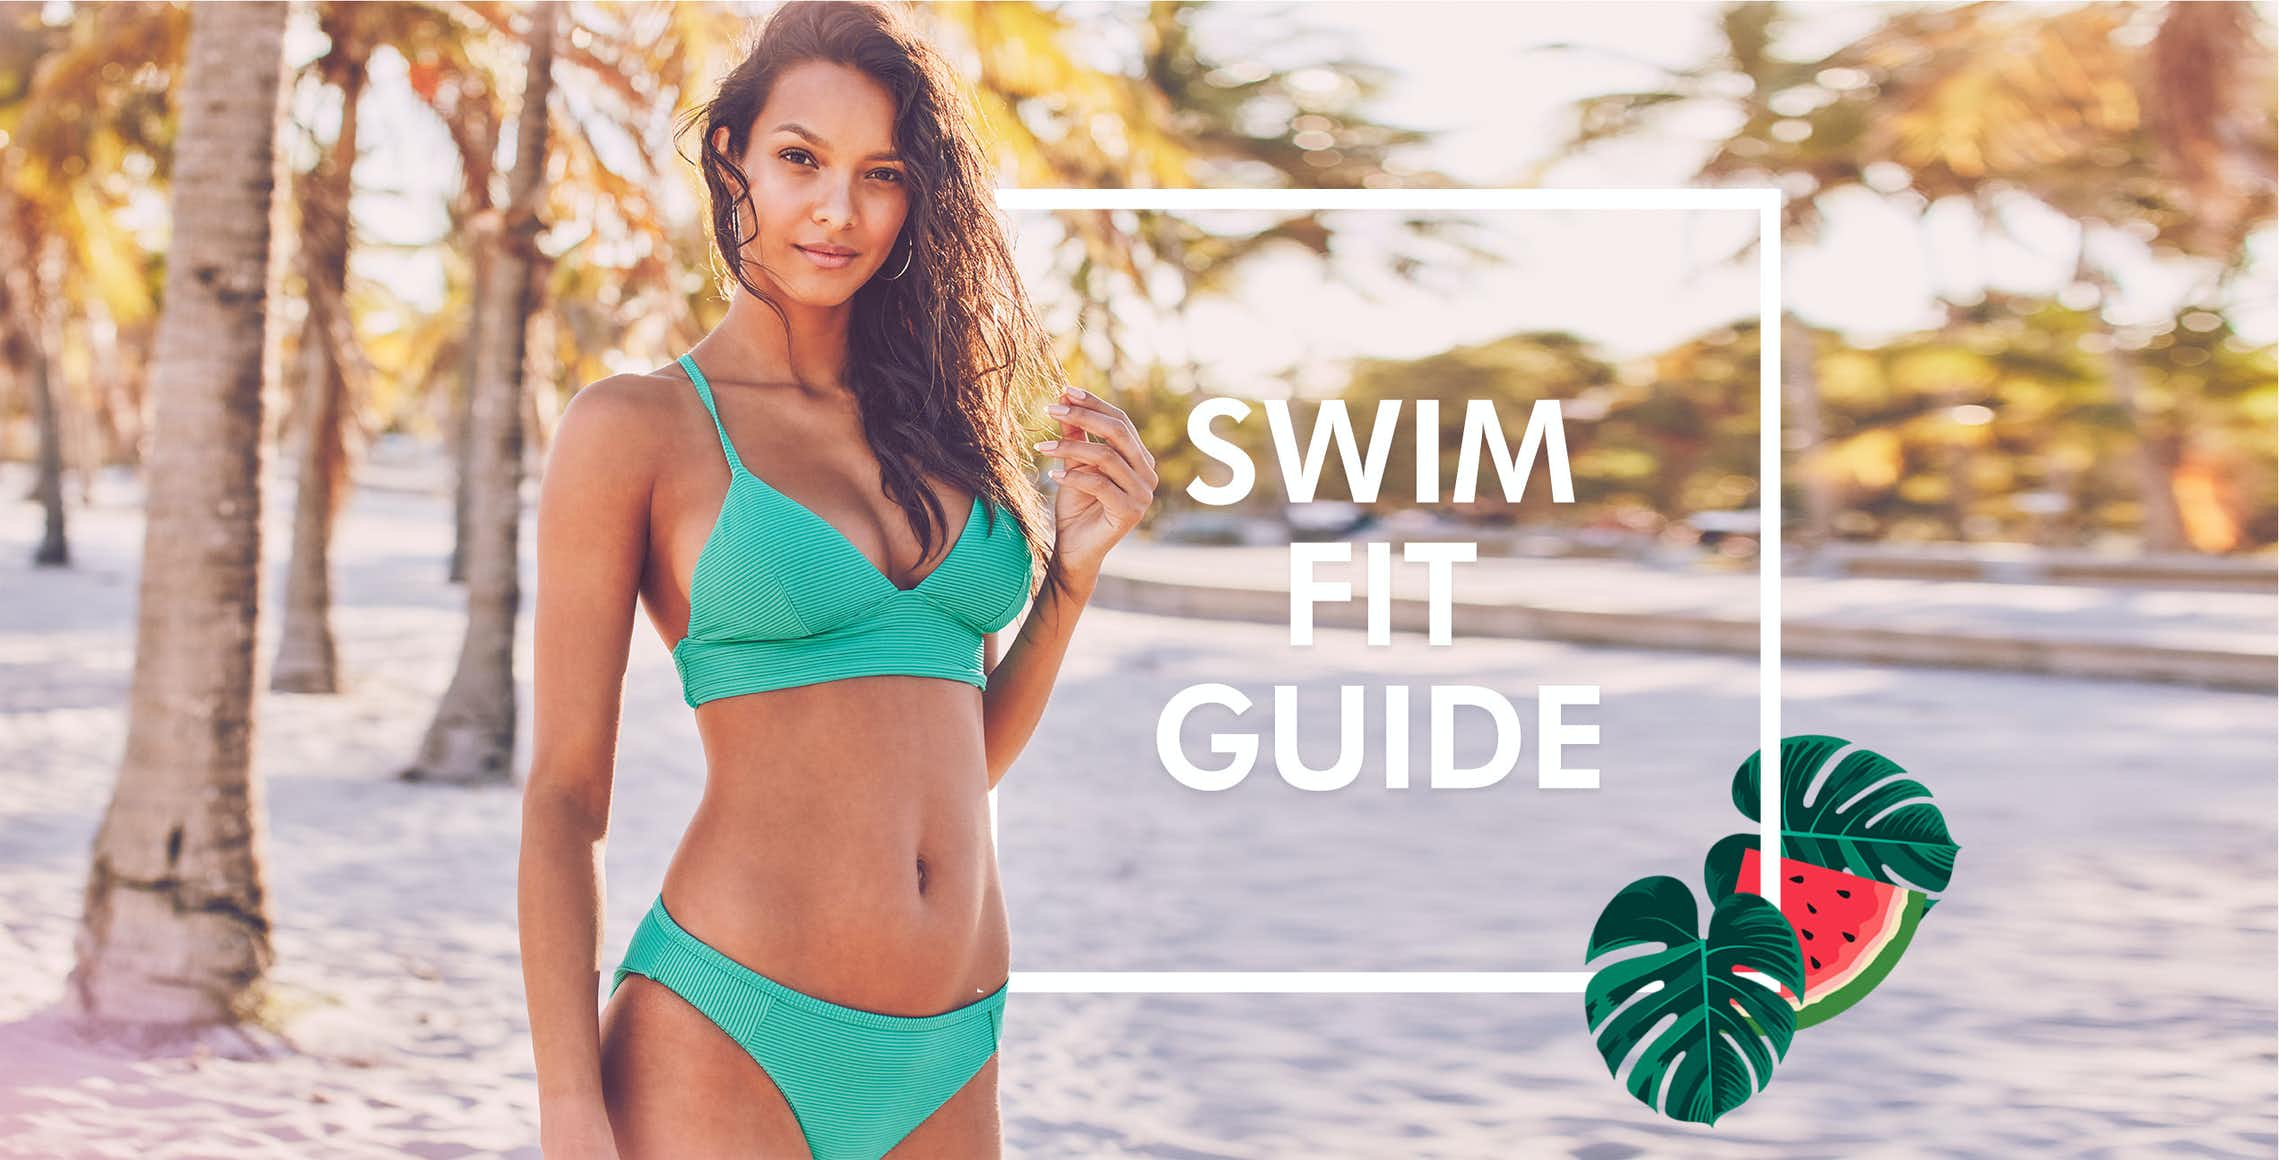 89952695477b3 Make swimsuit season something to look forward to with our swim fit guide,  whatever your shape, our insider tips will celebrate your body and get you  ready ...